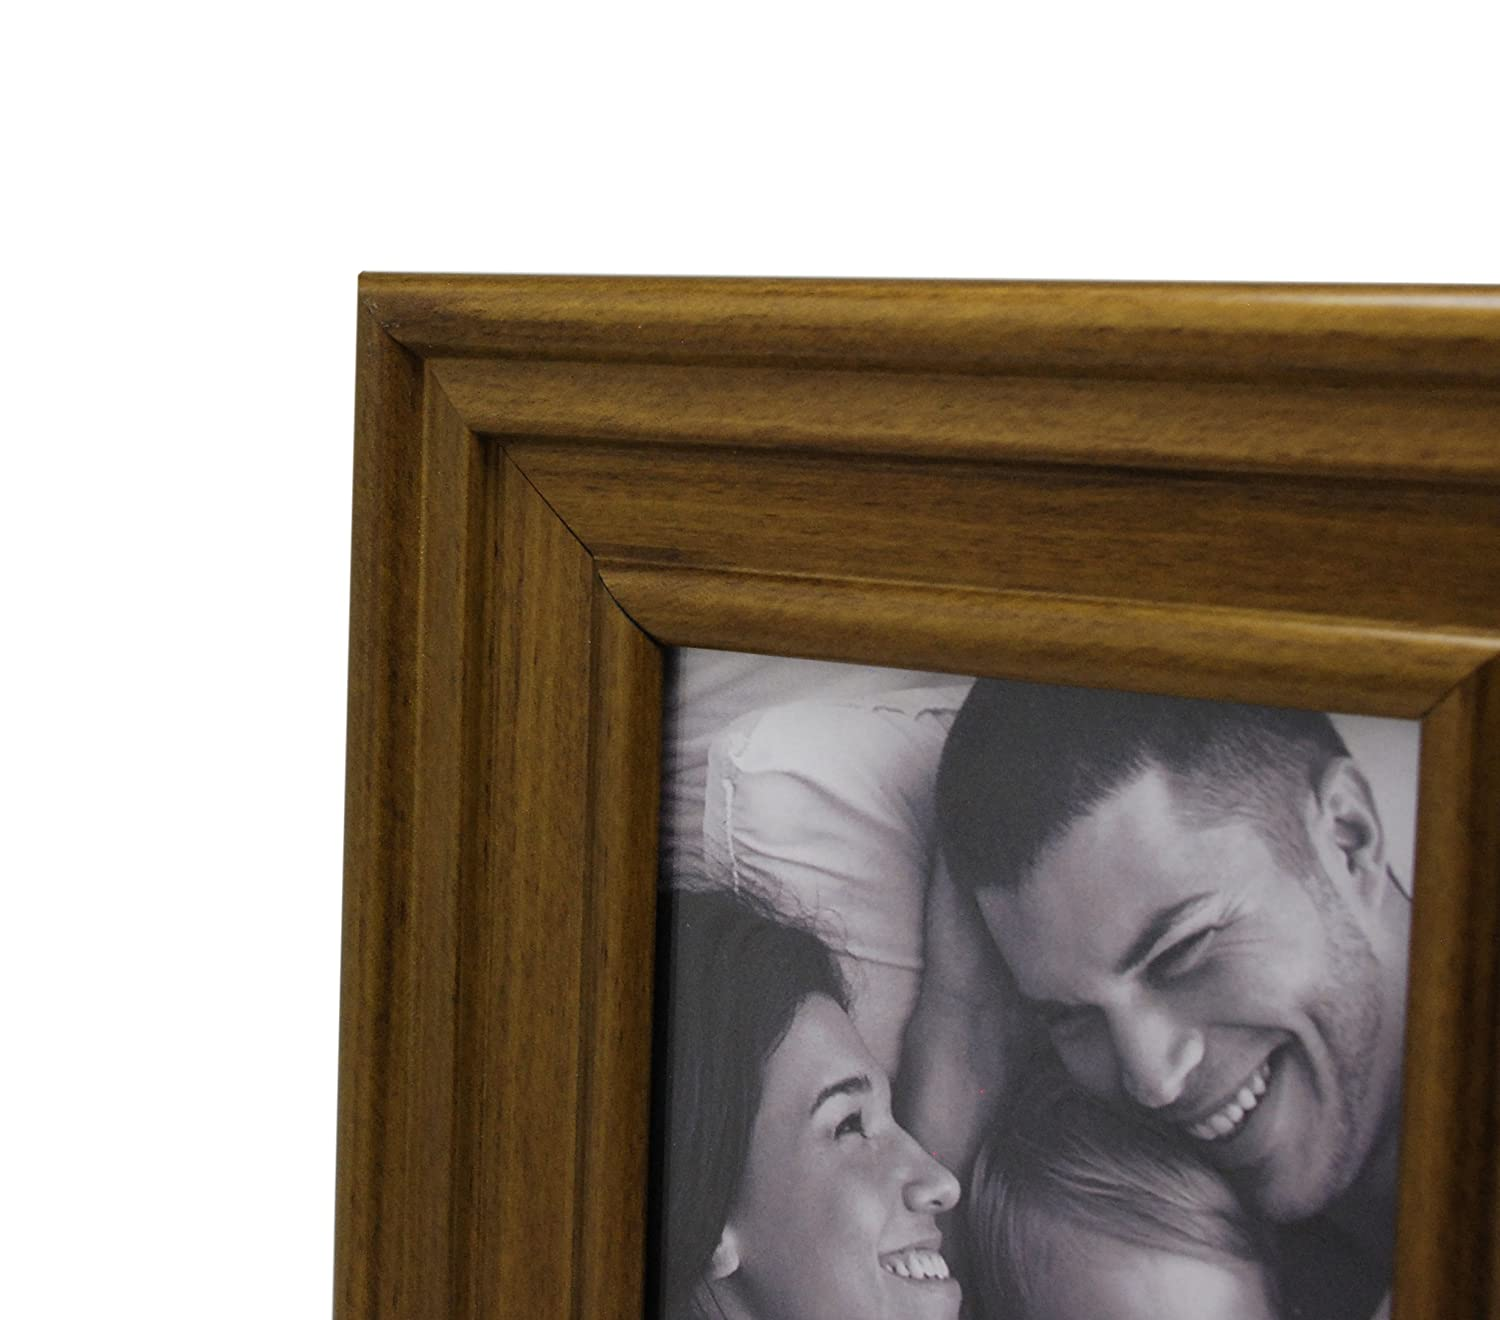 Kiera Grace Cole Picture Frame 8 by 10-Inch Antique Walnut Finish PH43779-2